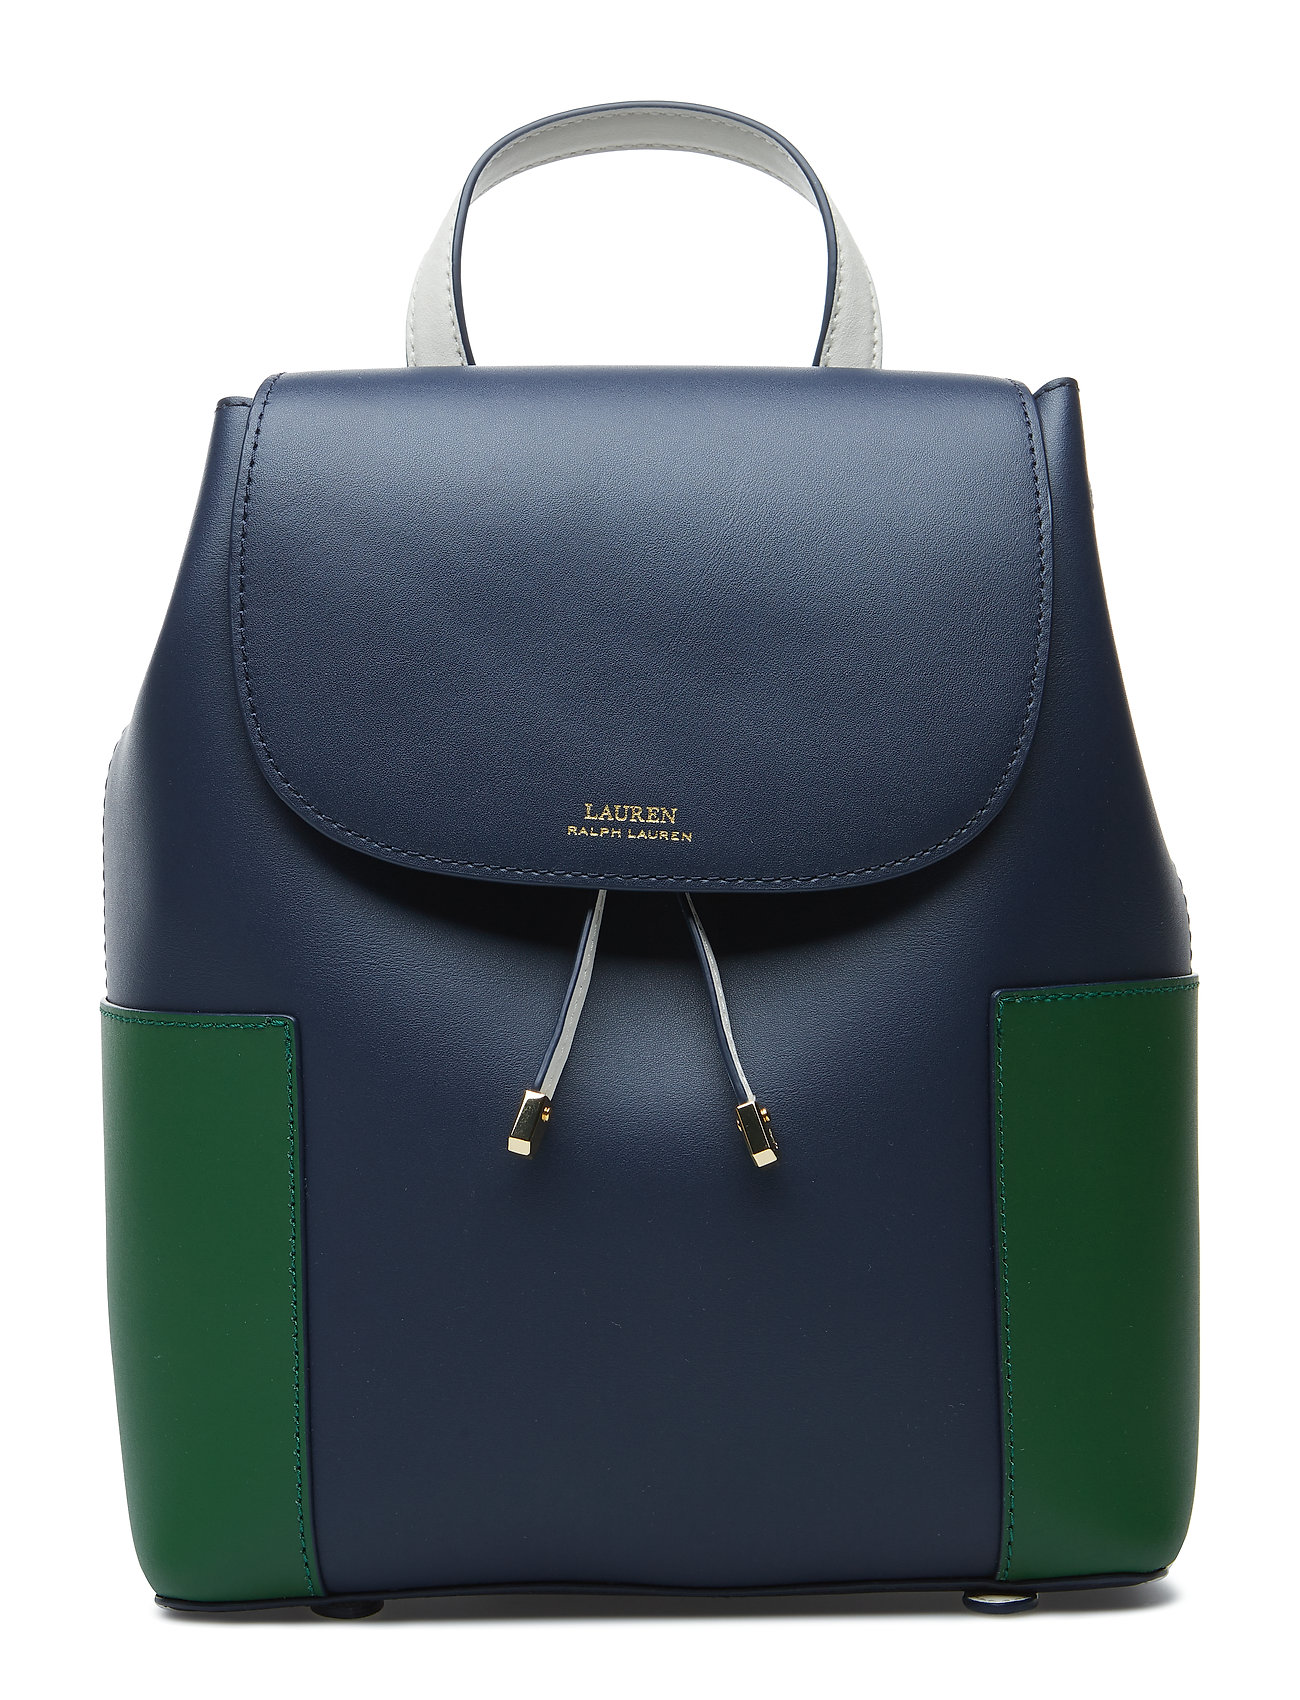 35e7d146f8 Color-blocked Leather Backpack (Navy green Clover) (£196) - Lauren ...